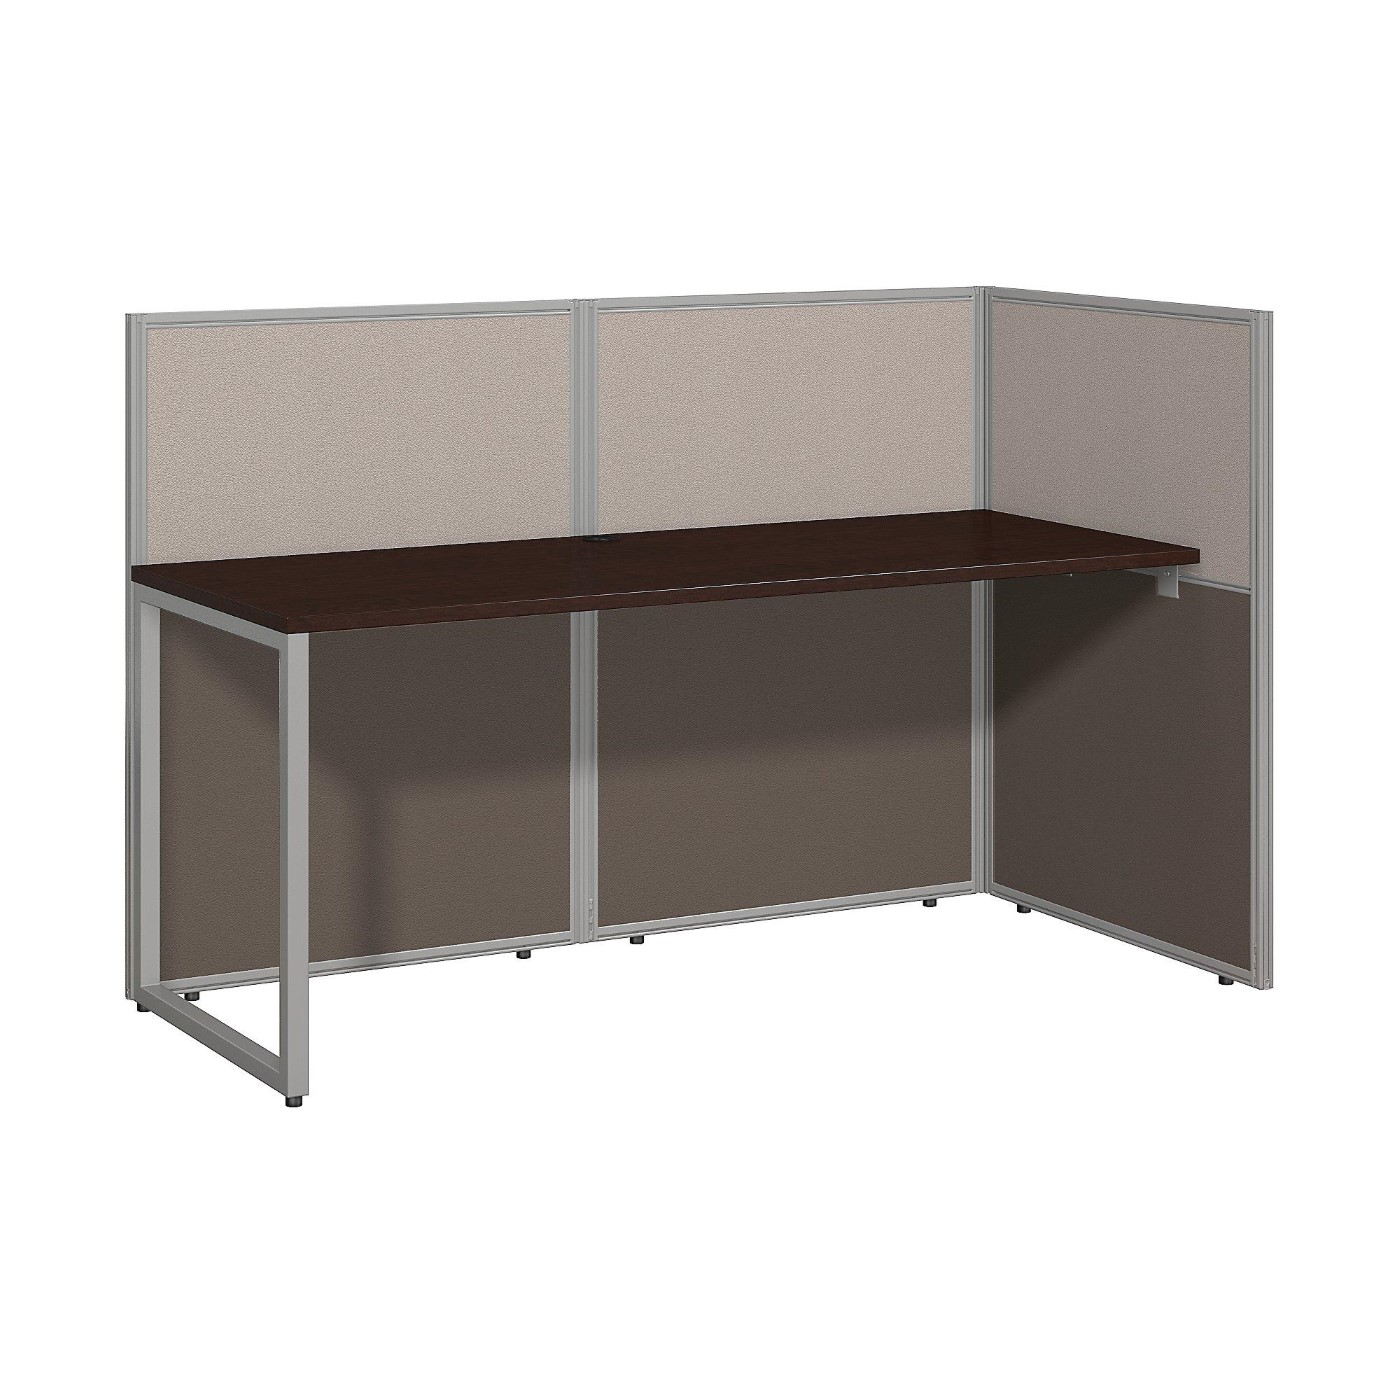 BUSH BUSINESS FURNITURE EASY OFFICE 60W STRAIGHT DESK OPEN OFFICE. FREE SHIPPING  VIDEO BELOW.  SALE DEDUCT 10% MORE ENTER '10percent' IN COUPON CODE BOX WHILE CHECKING OUT. ENDS 5-31-20.